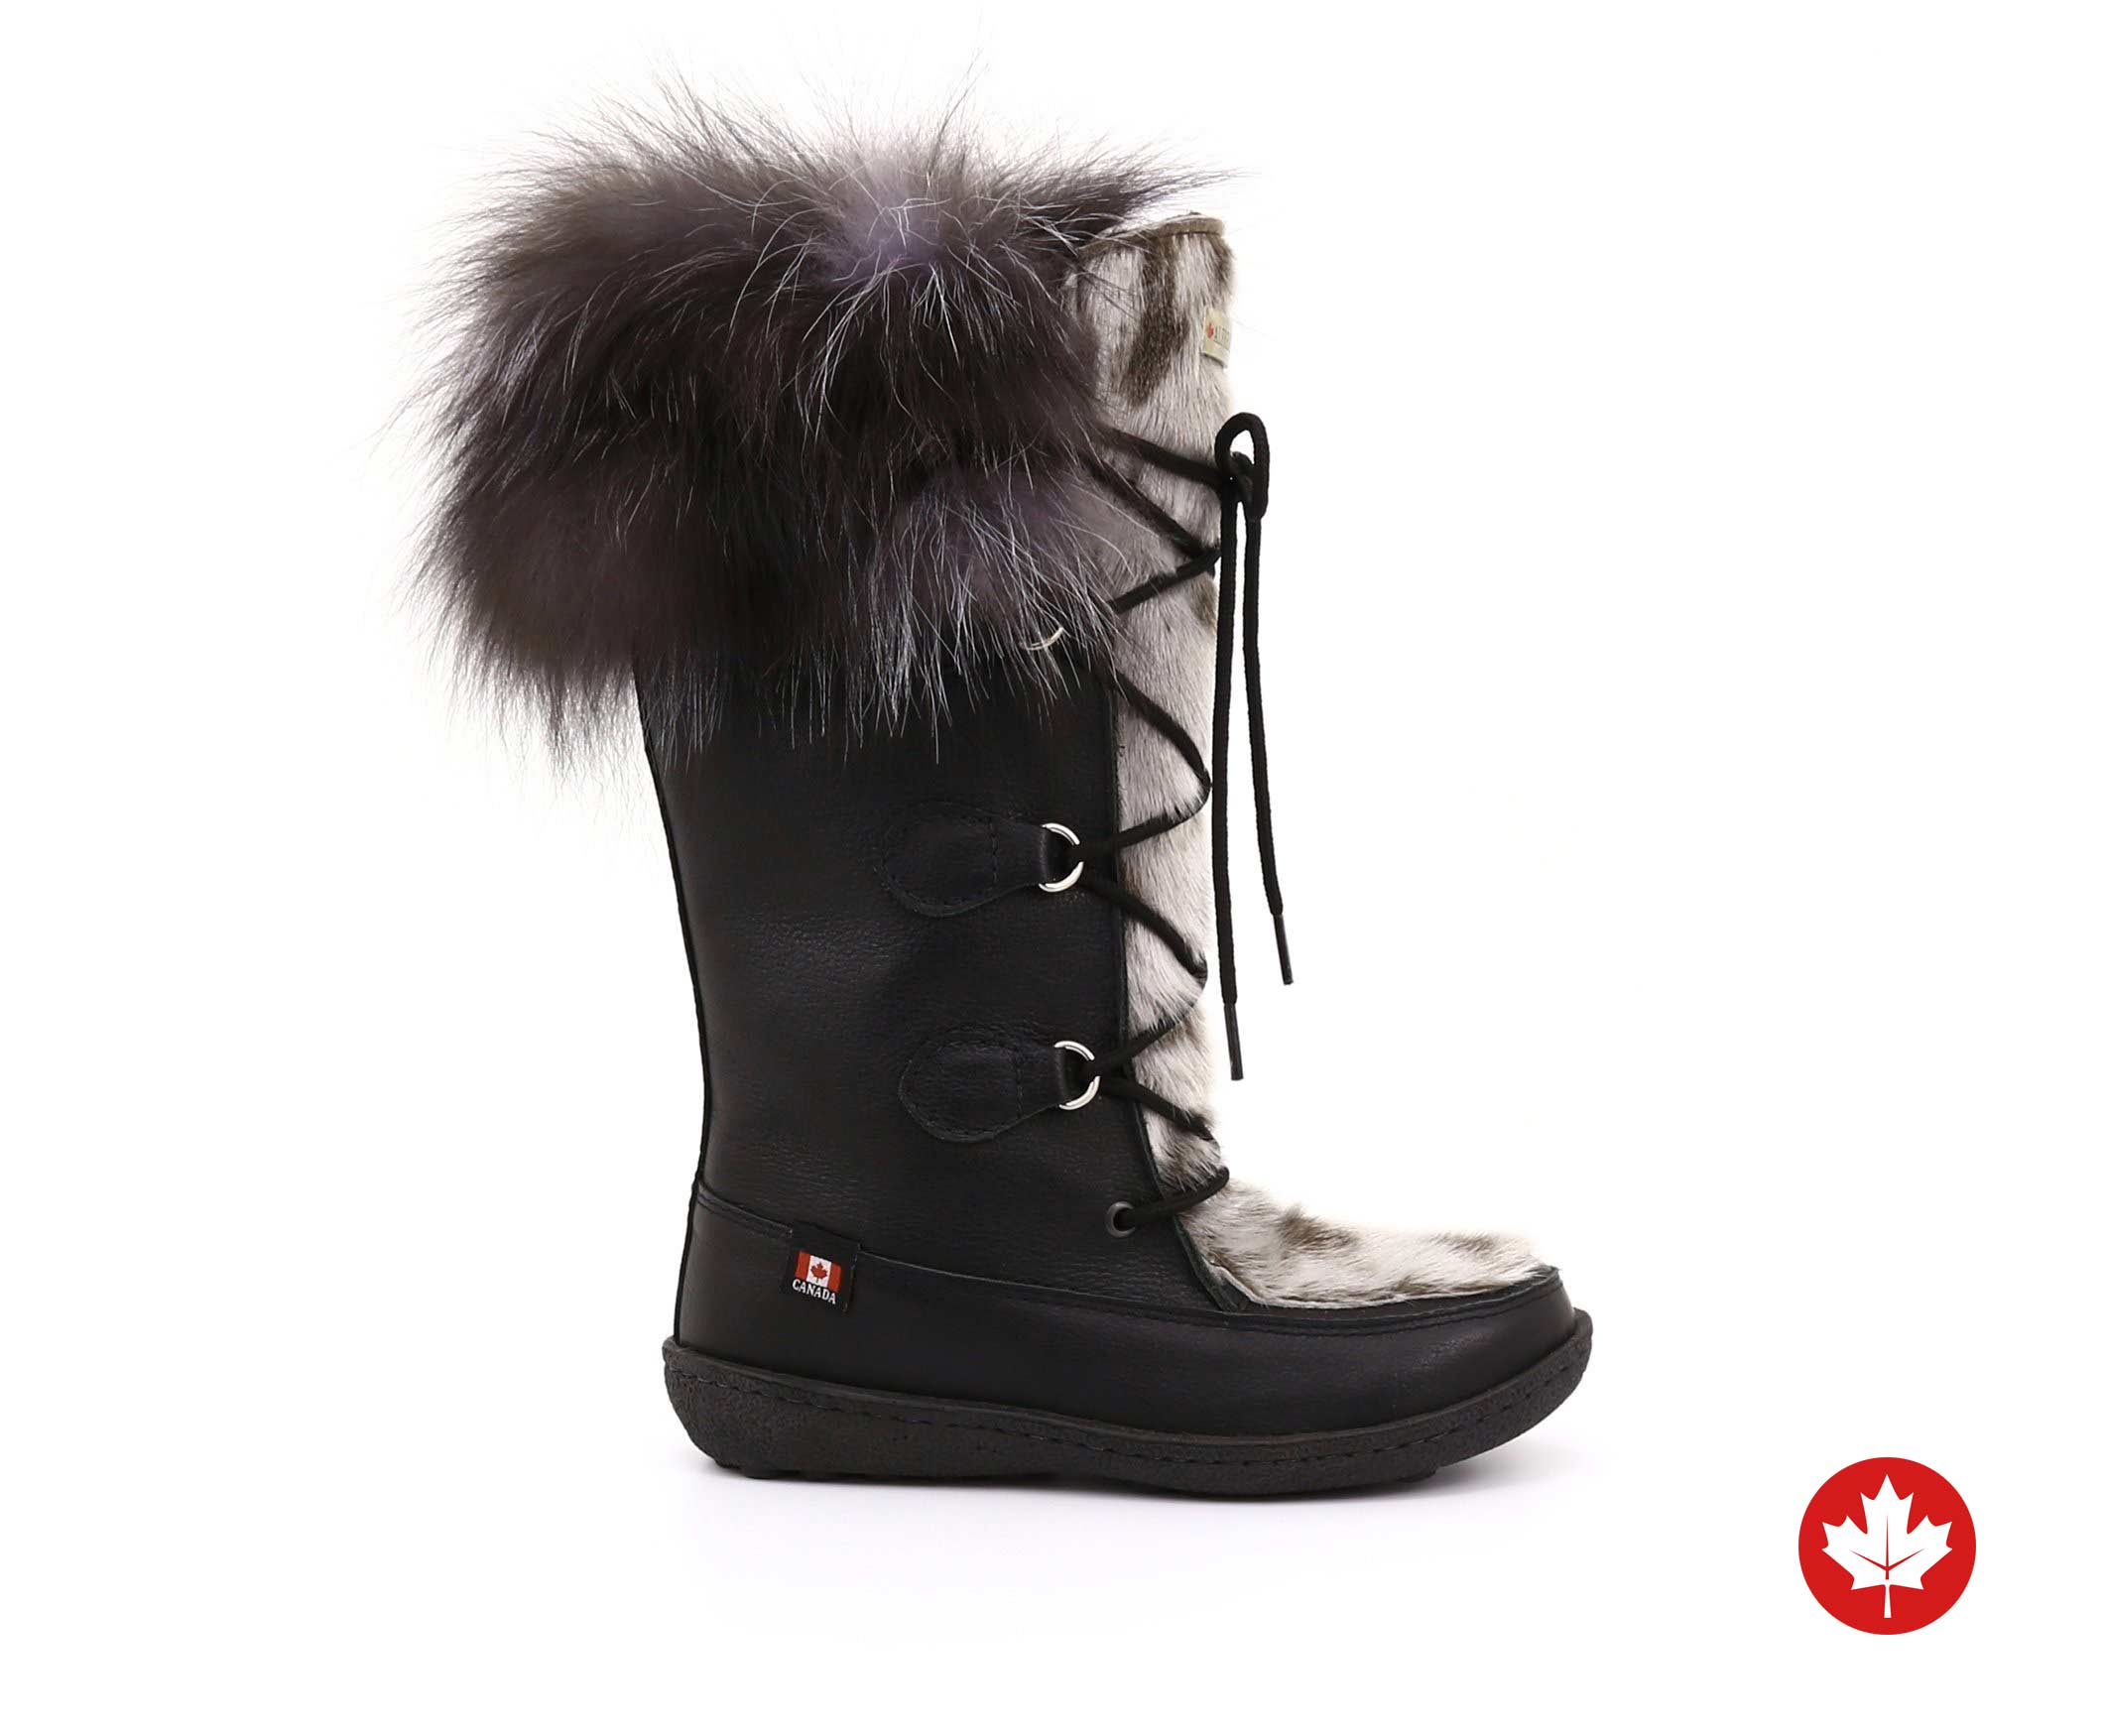 Luna Women's Winter Boot in Sealskin and Recycled Fur